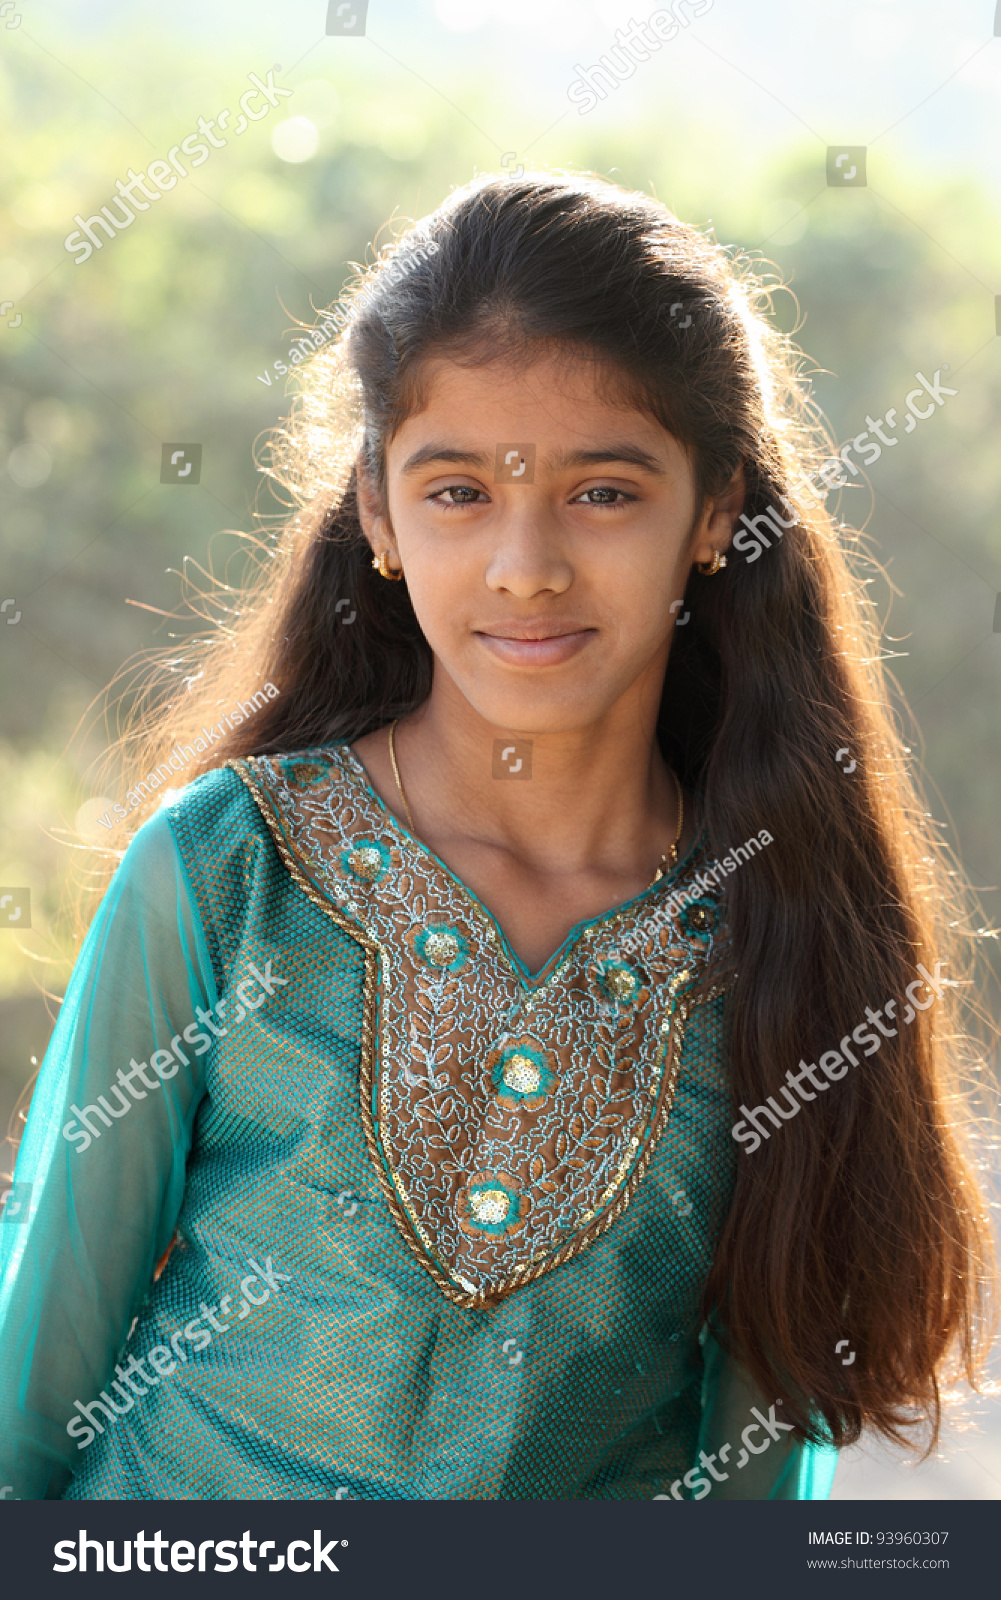 Beautiful Teen Girl: Indian Beautiful Teen Girl Stock Photo 93960307